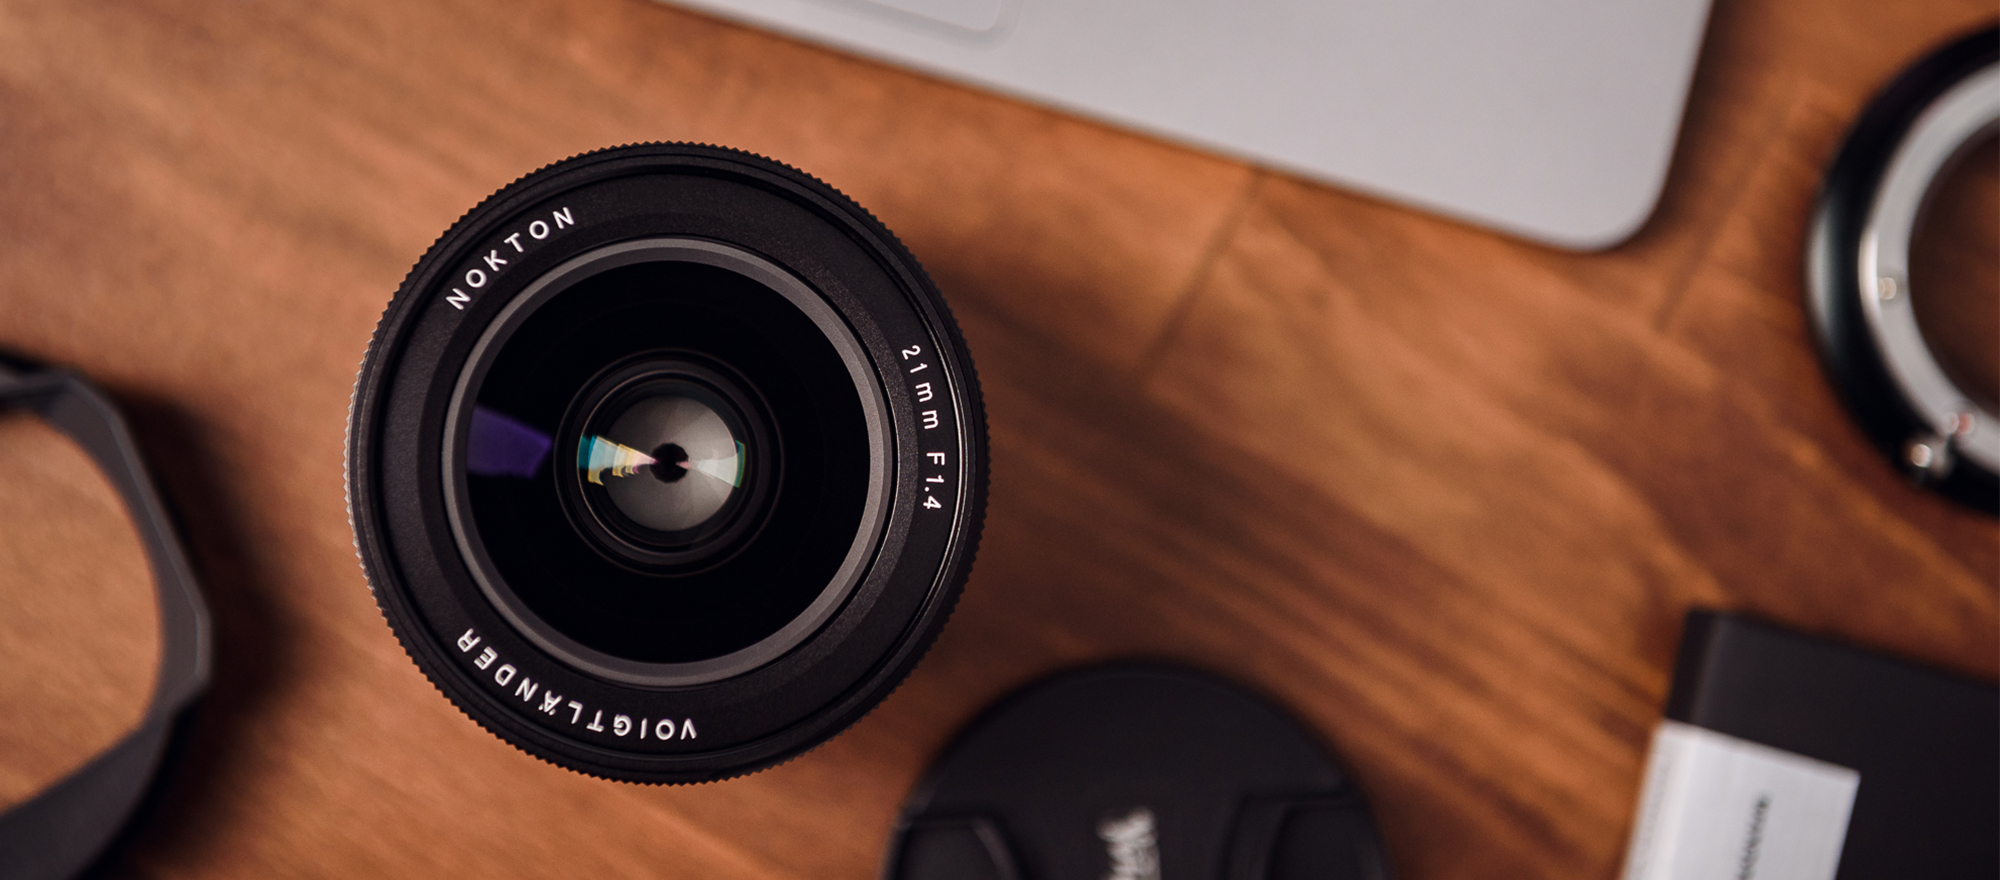 Voigtlander Nokton 21 mm f/1.4 lens with Leica M mount on desk with accessories